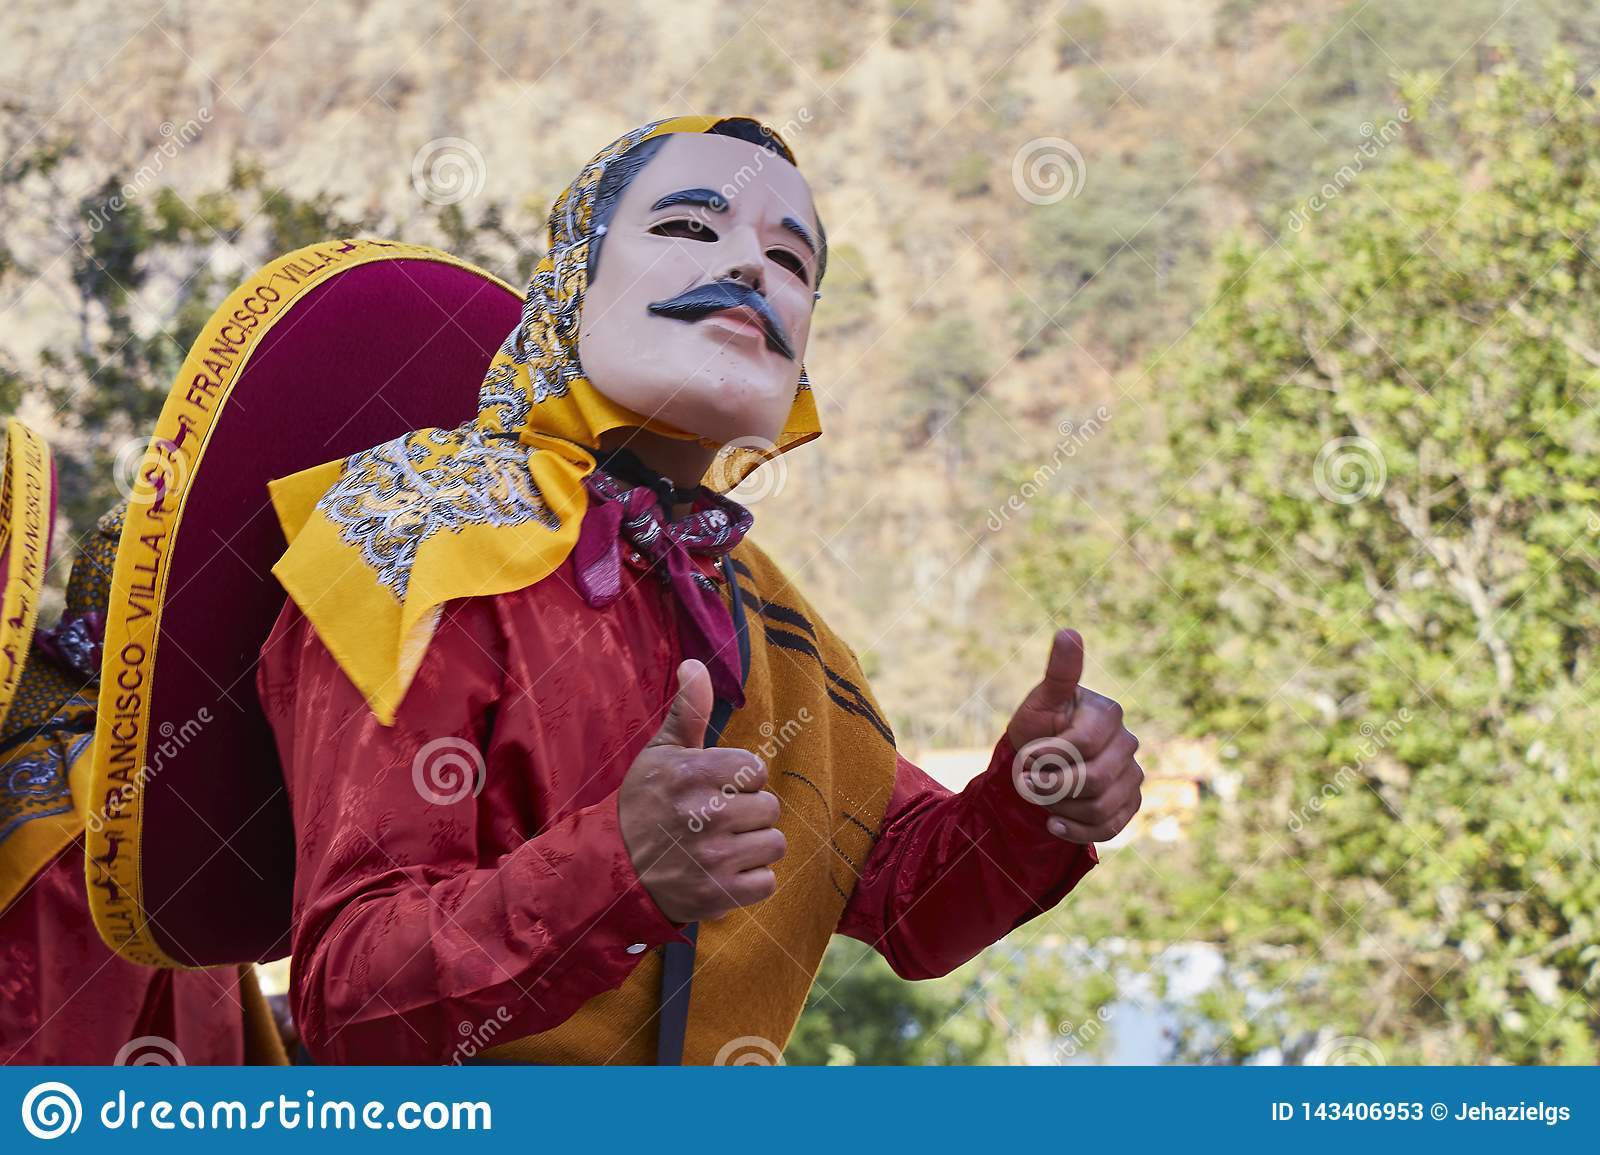 Person doing thumbs up, with mask with mustache, red dress and mexican